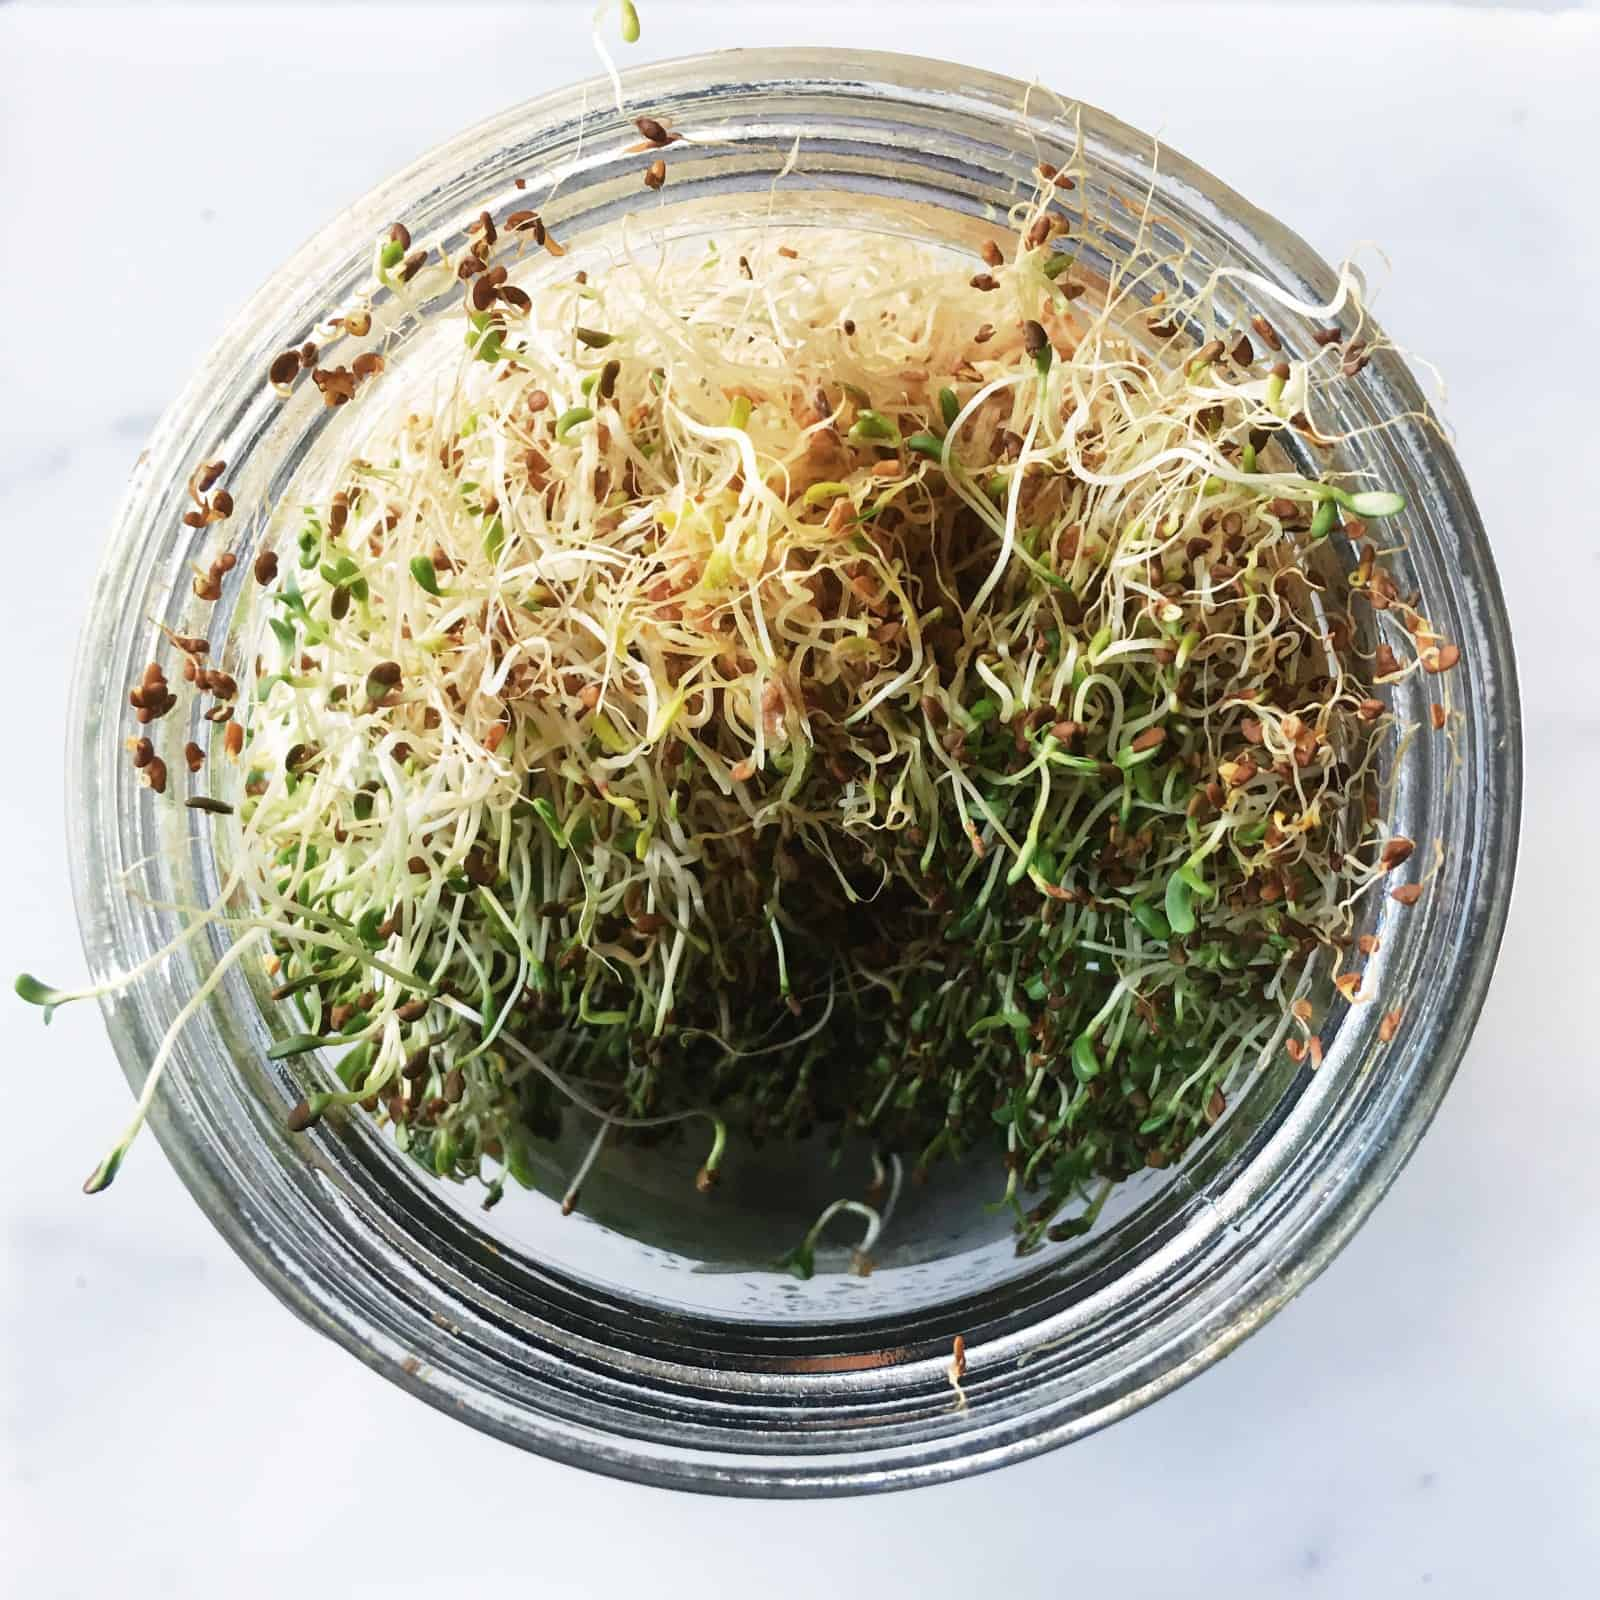 Growing Your Own Sprouts at Home